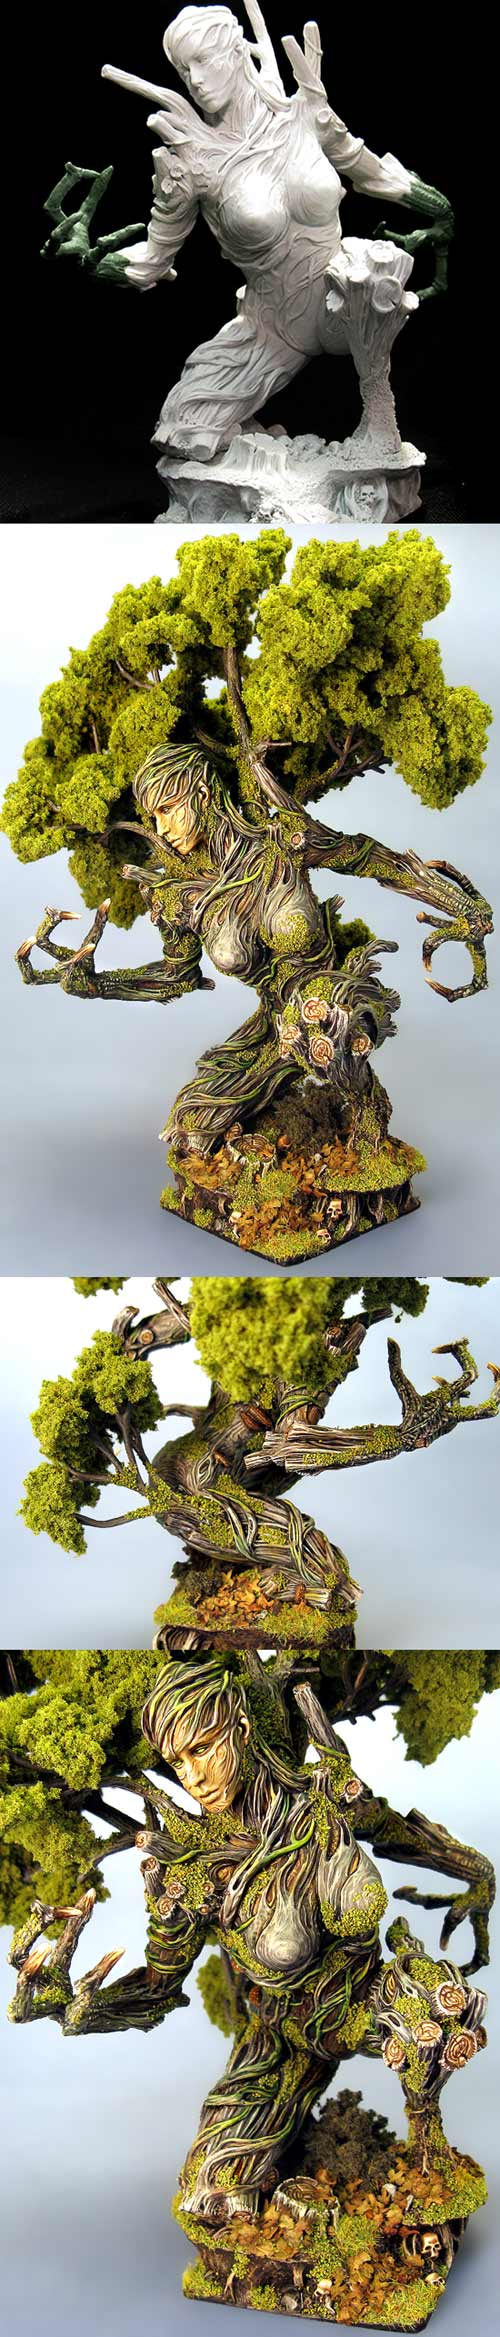 Springtime Treewoman with sculpted claws